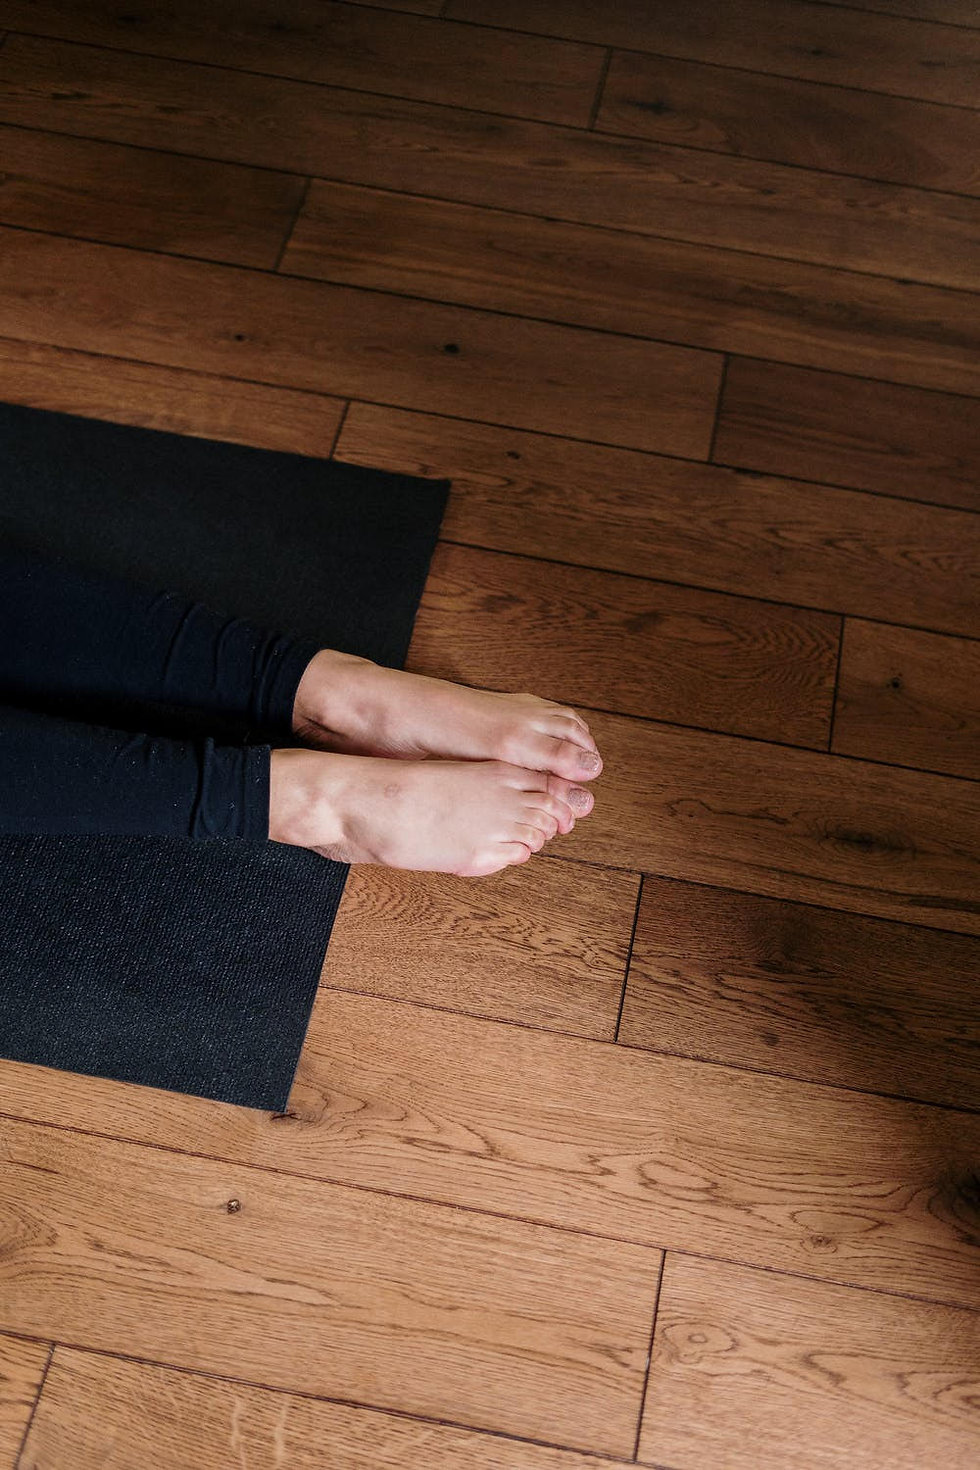 Woman lying down on  yoga mat, with bear feet extending off the end